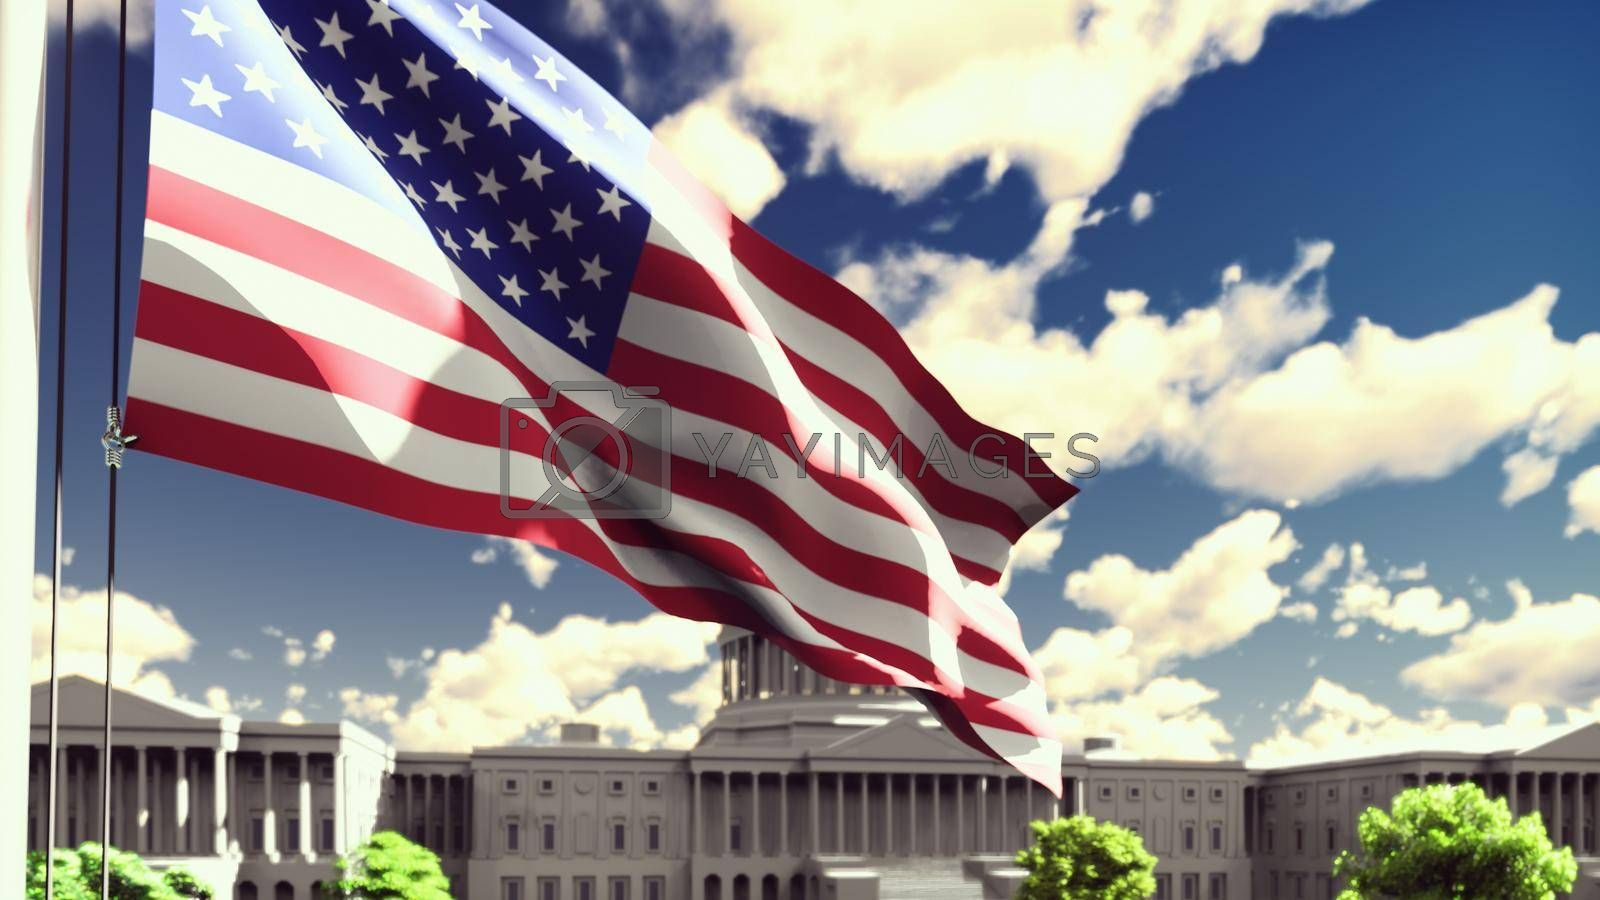 Royalty free image of The American flag flutters in the wind on a Sunny day against the blue sky and the Capitol. 3D Rendering by designprojects